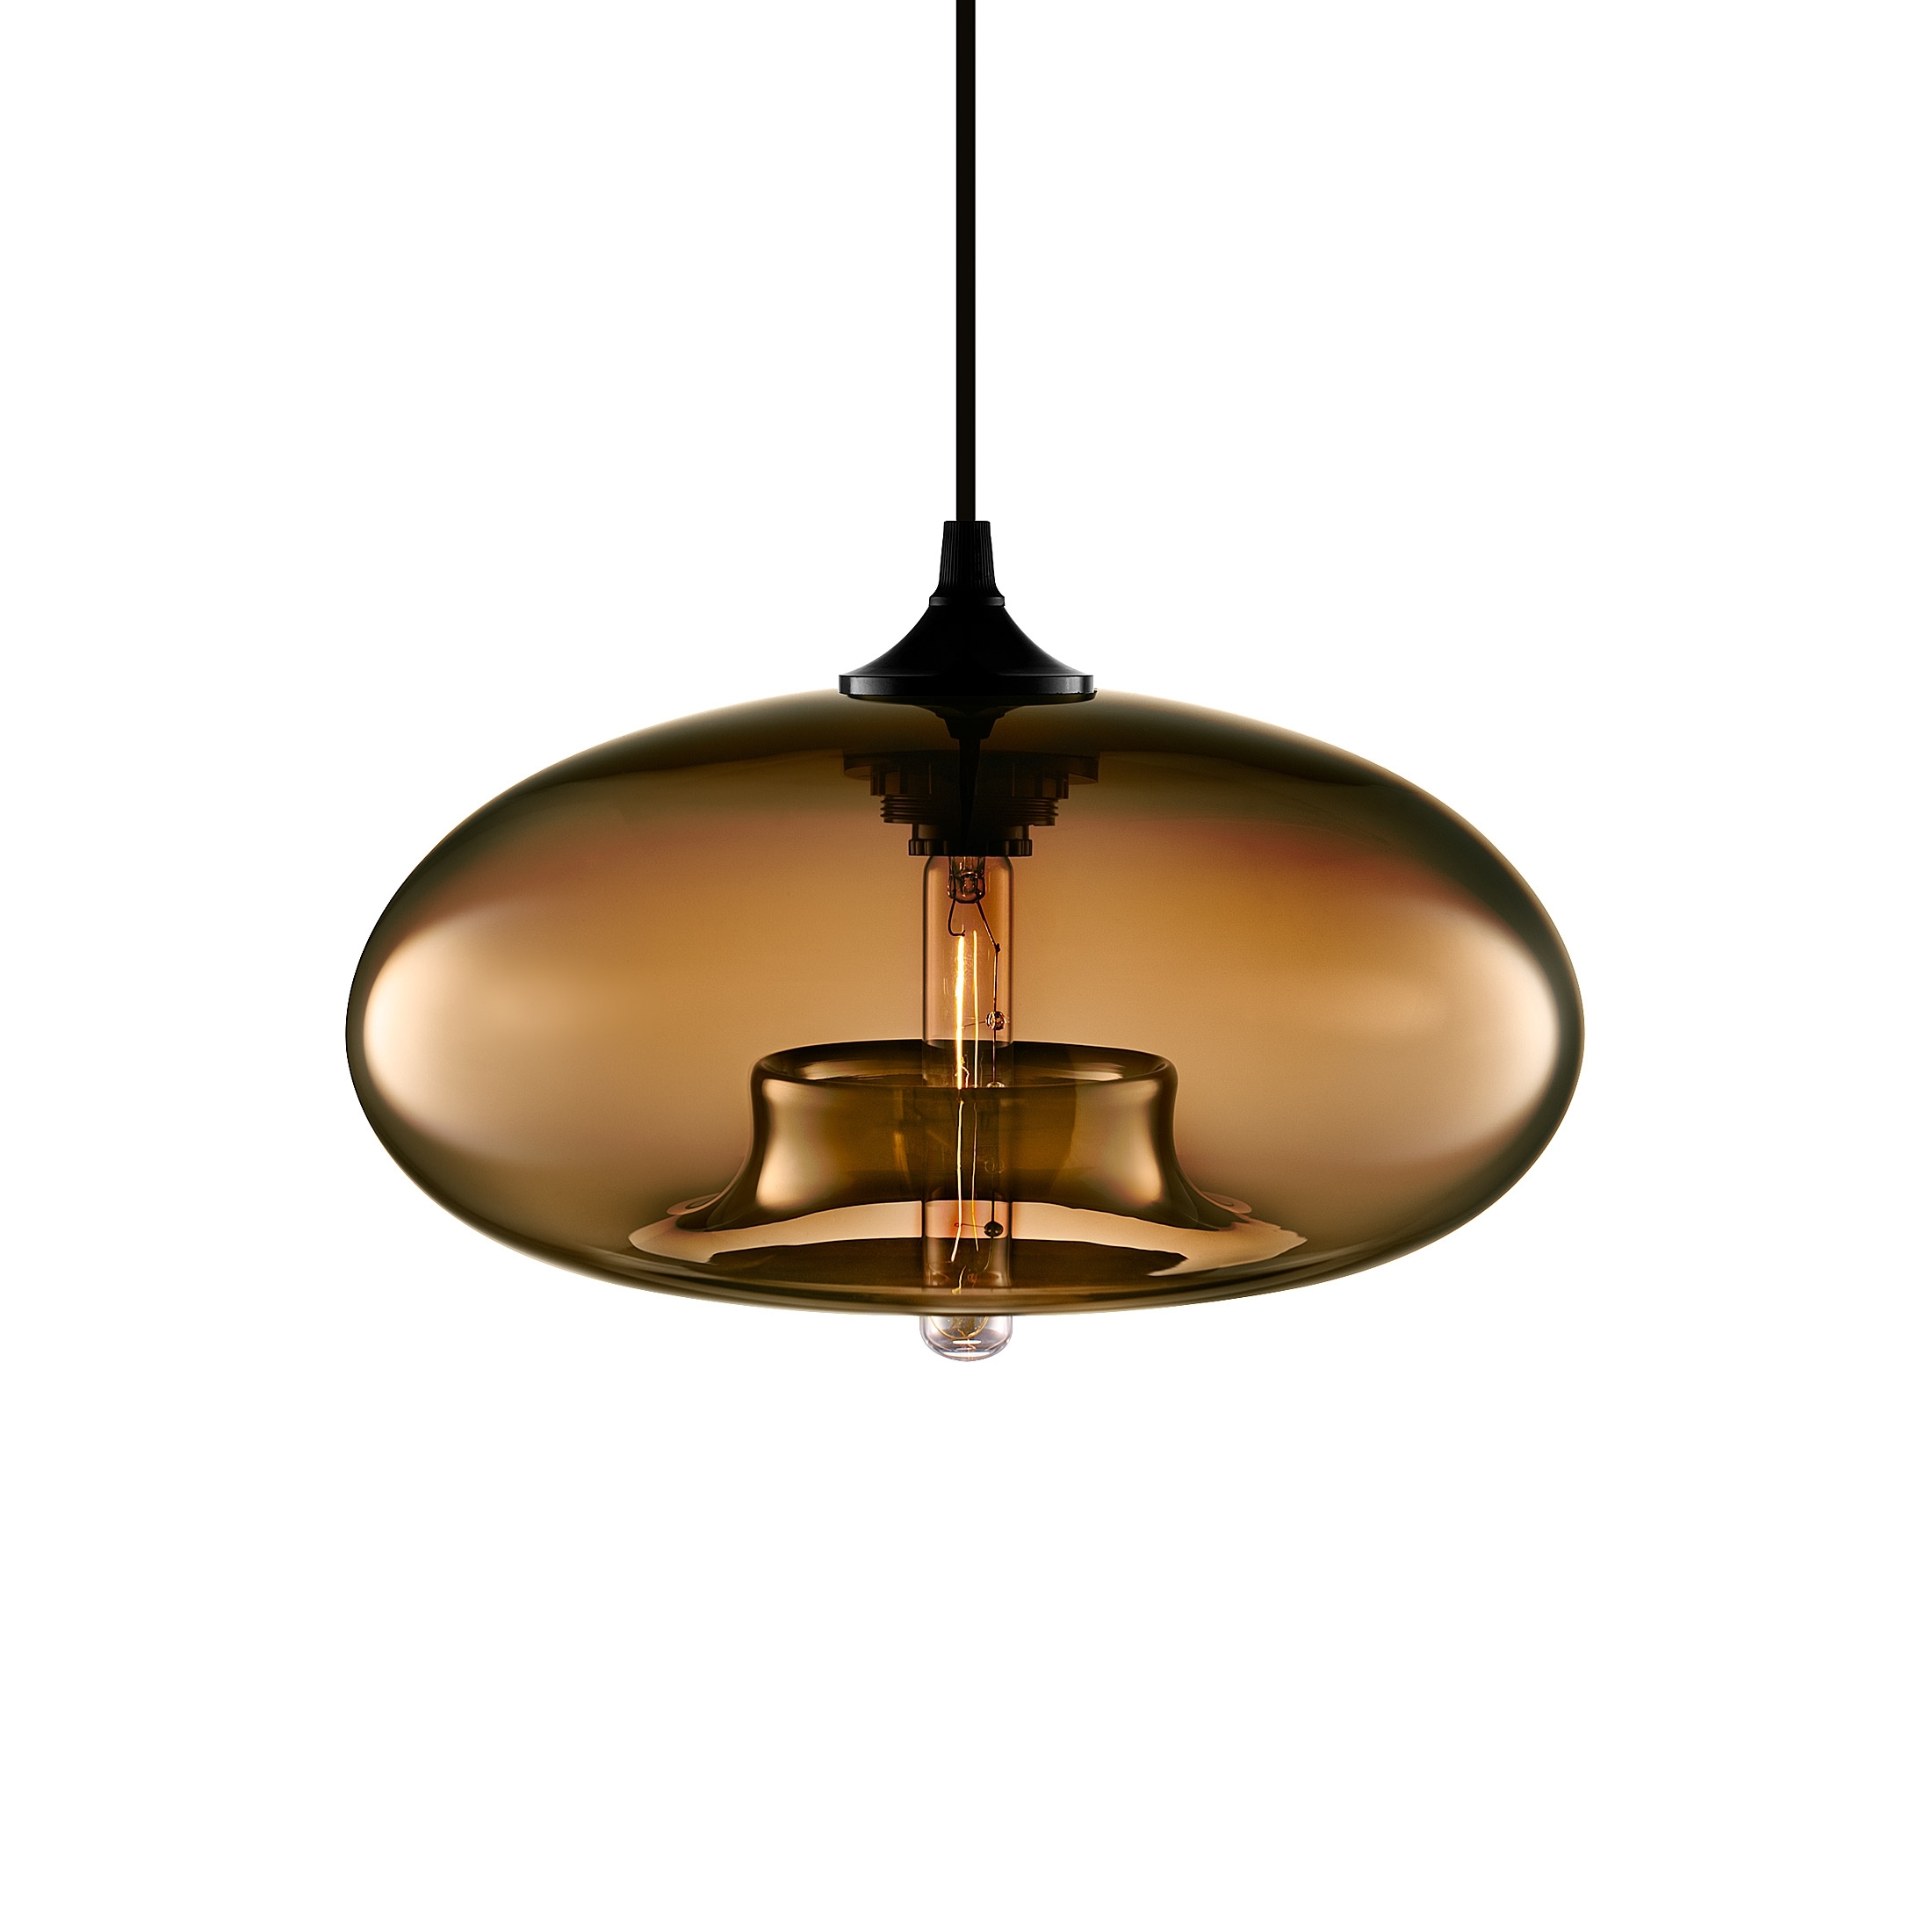 Favorite Lamp: Black Modern Outdoor Lights Pendant Lighting Photo Plus Metal Intended For Round Outdoor Hanging Lights (View 5 of 20)